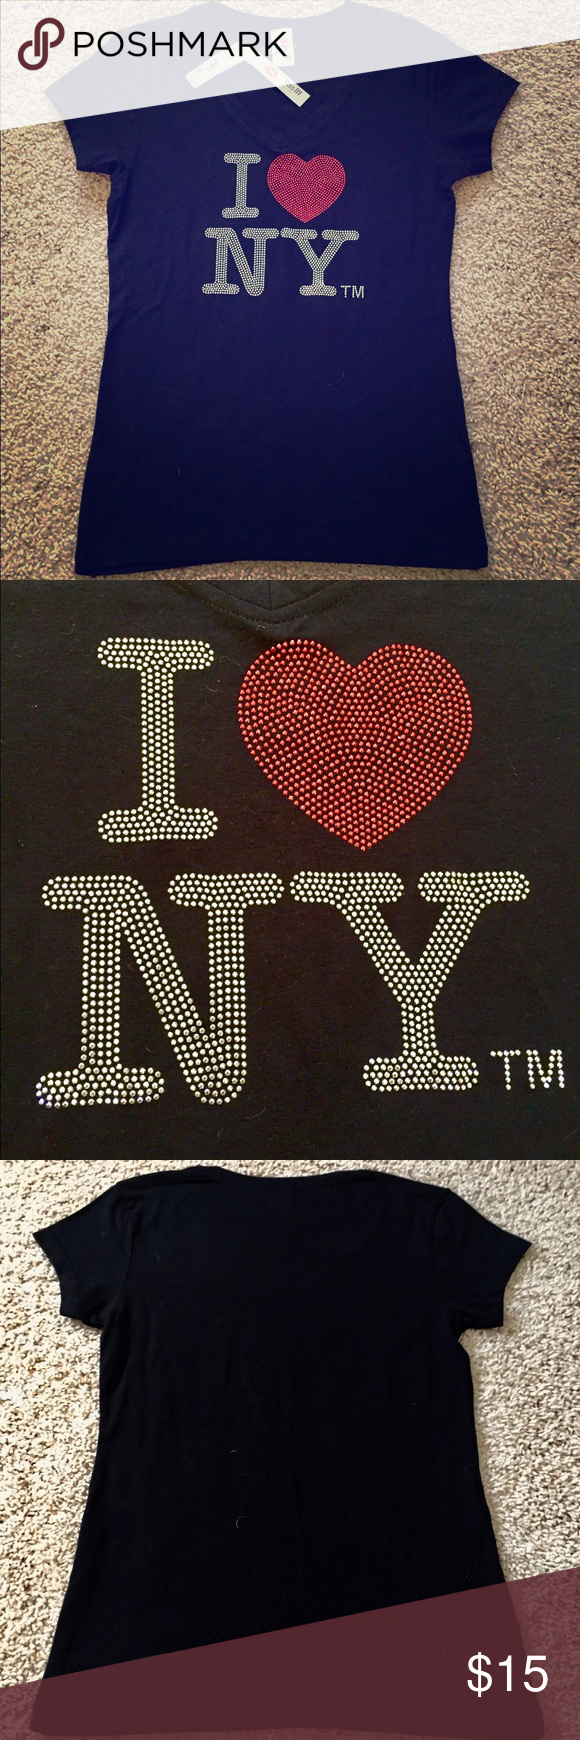 I ❤️ NY sequined t-shirt NWT I ❤️ NY black sequined t-shirt by kiss NY. Kiss NY Tops Tees - Short Sleeve